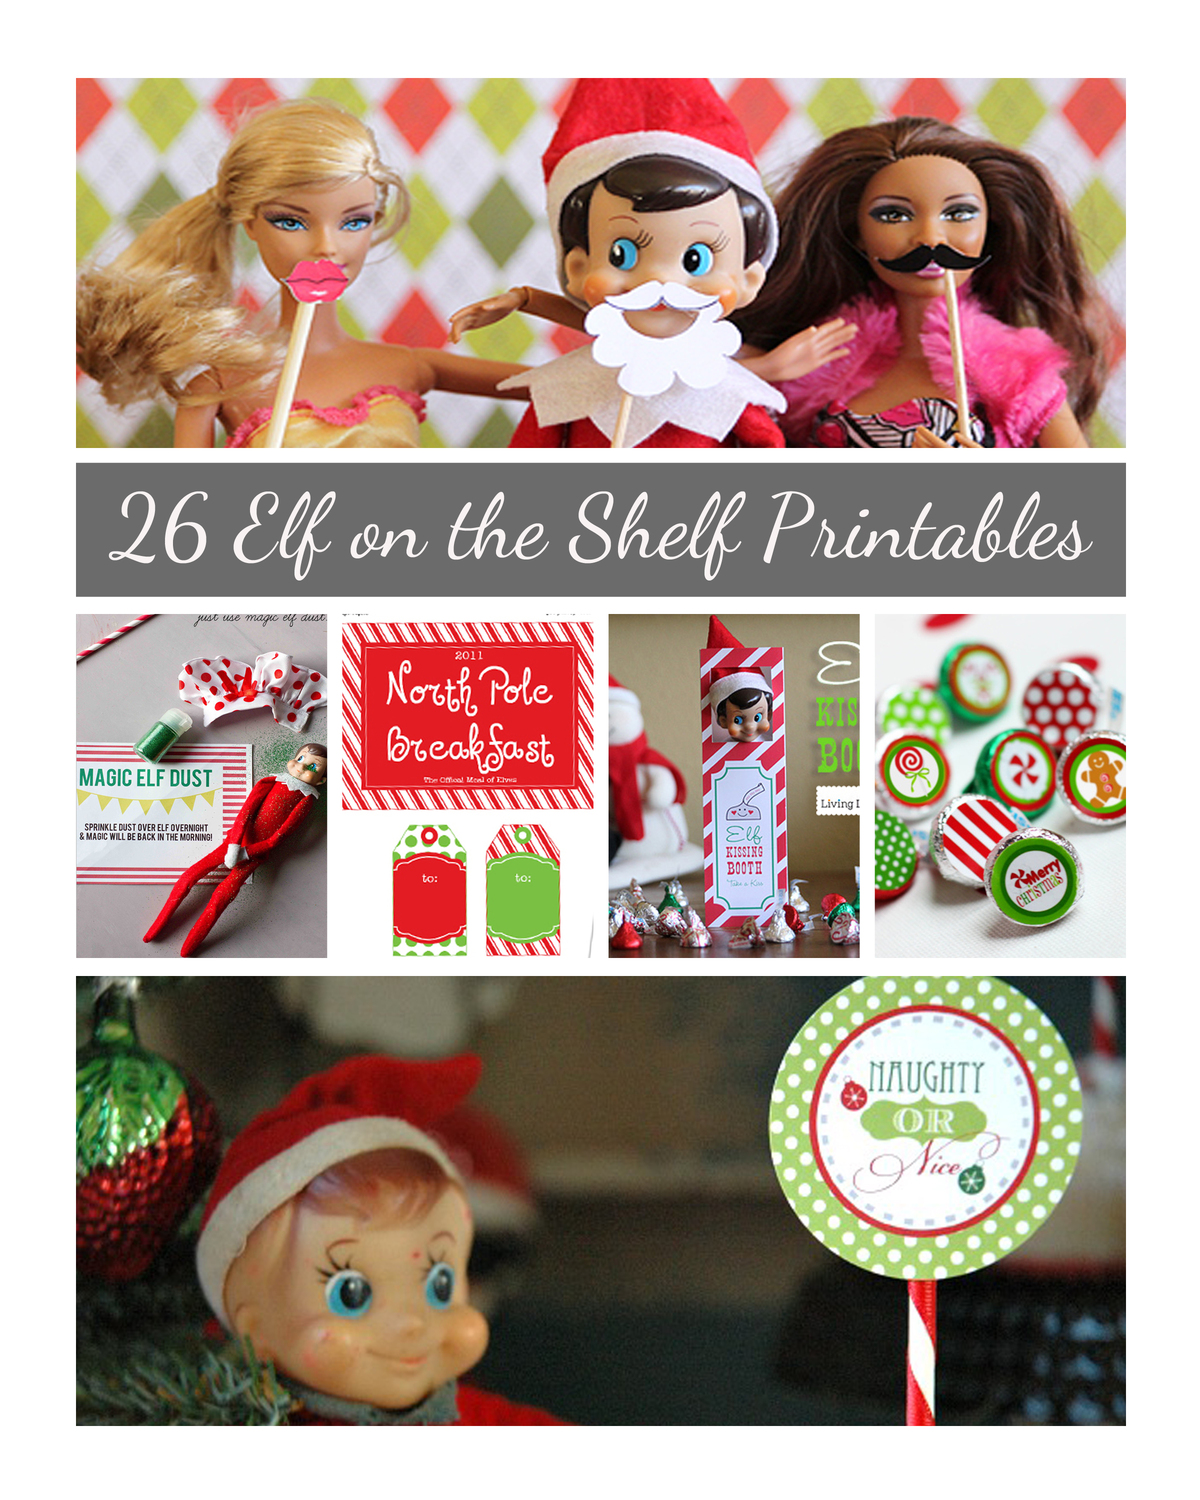 photo about Elf on the Shelf Printable Props titled Elf upon the Shelf Printables